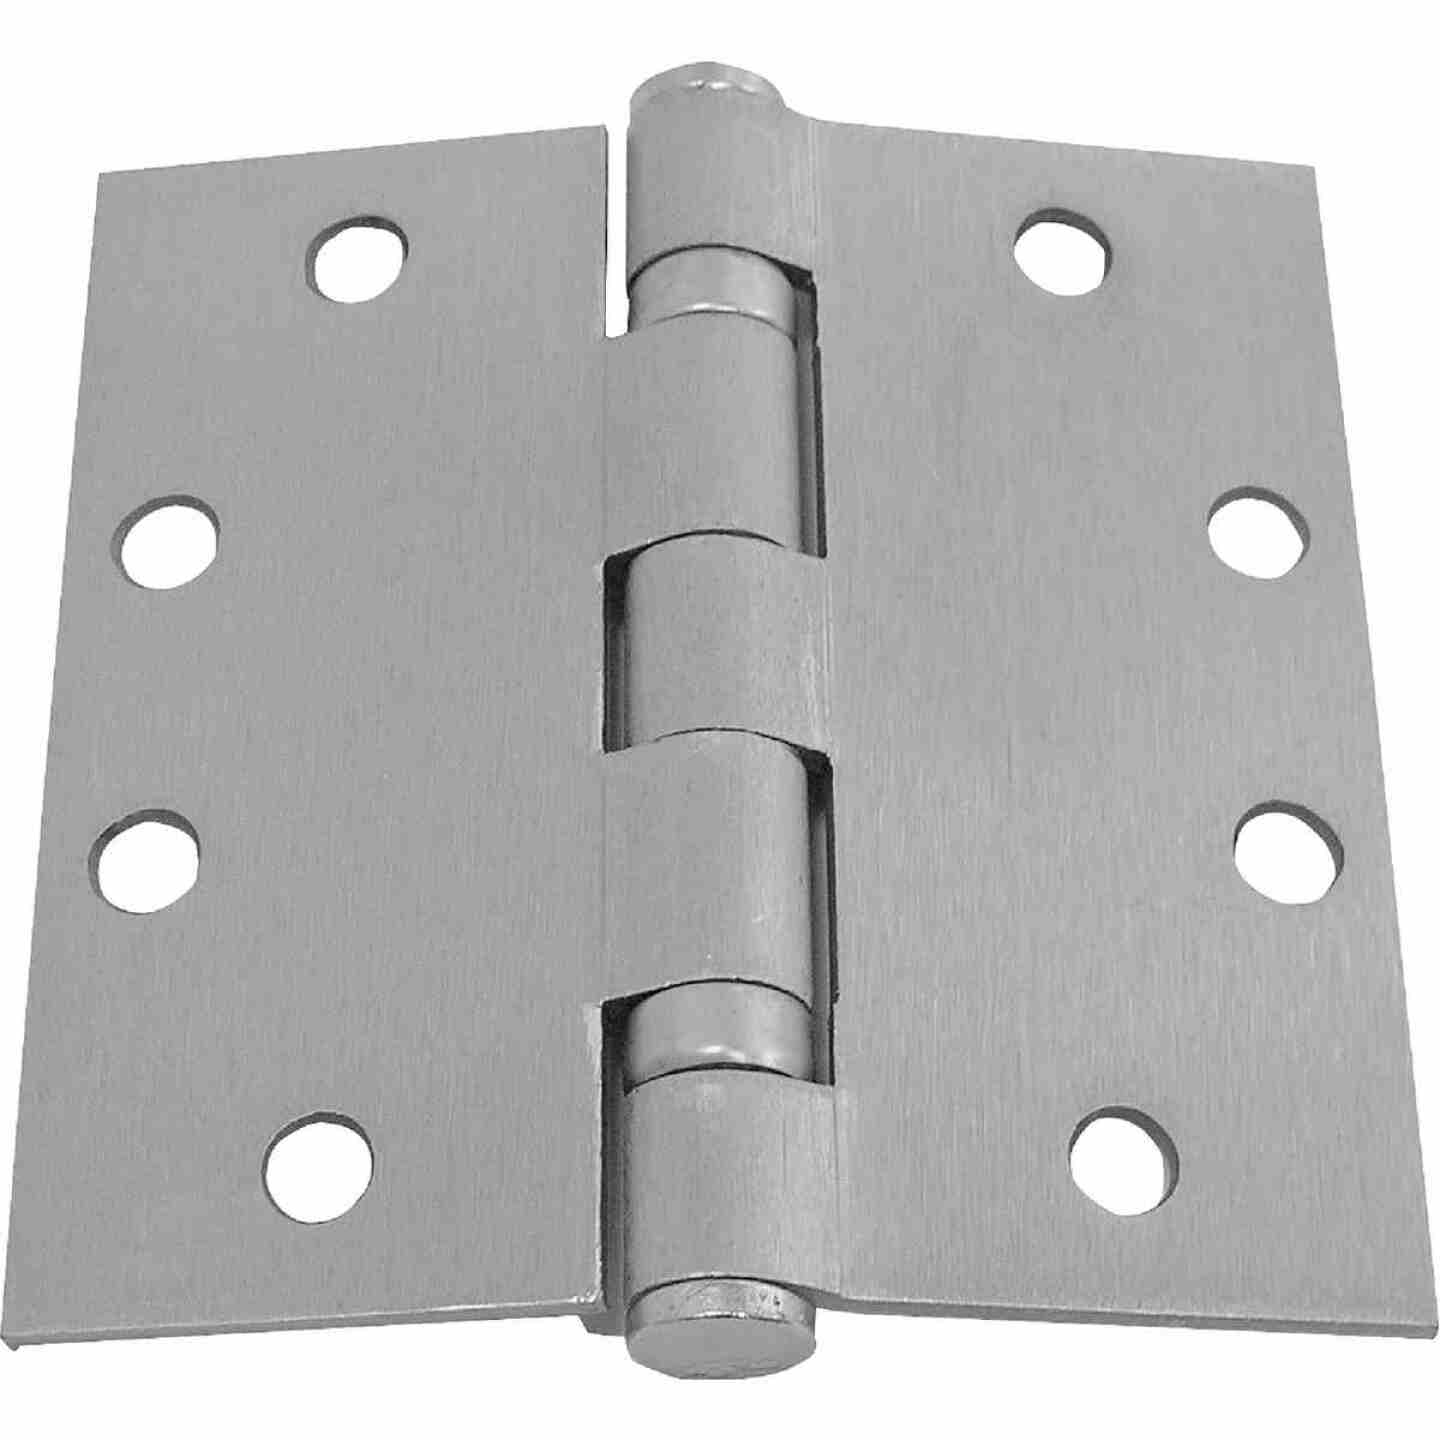 Tell 4-1/2 In. Square Prime Coat Commercial Plain Bearing Door Hinge (3-Pack) Image 1